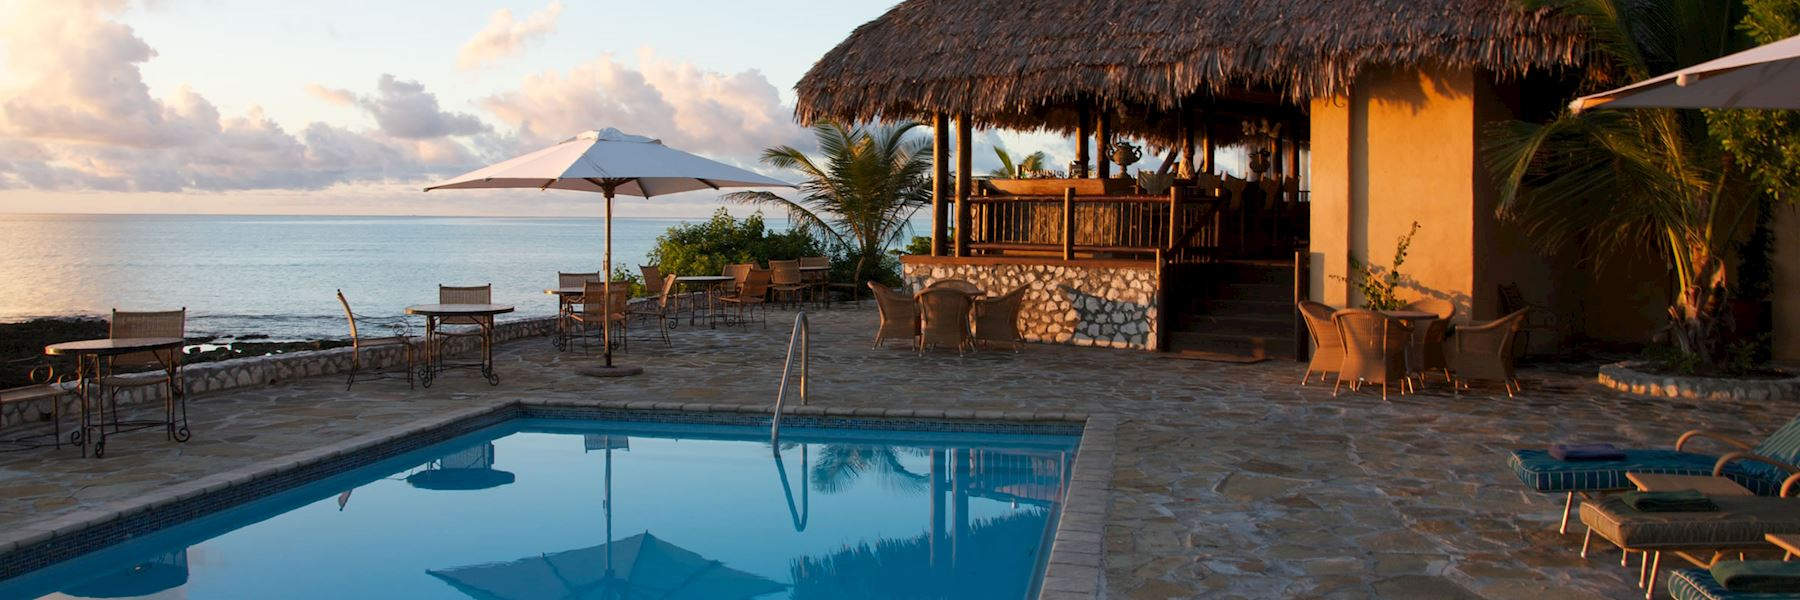 Accommodations in Mozambique